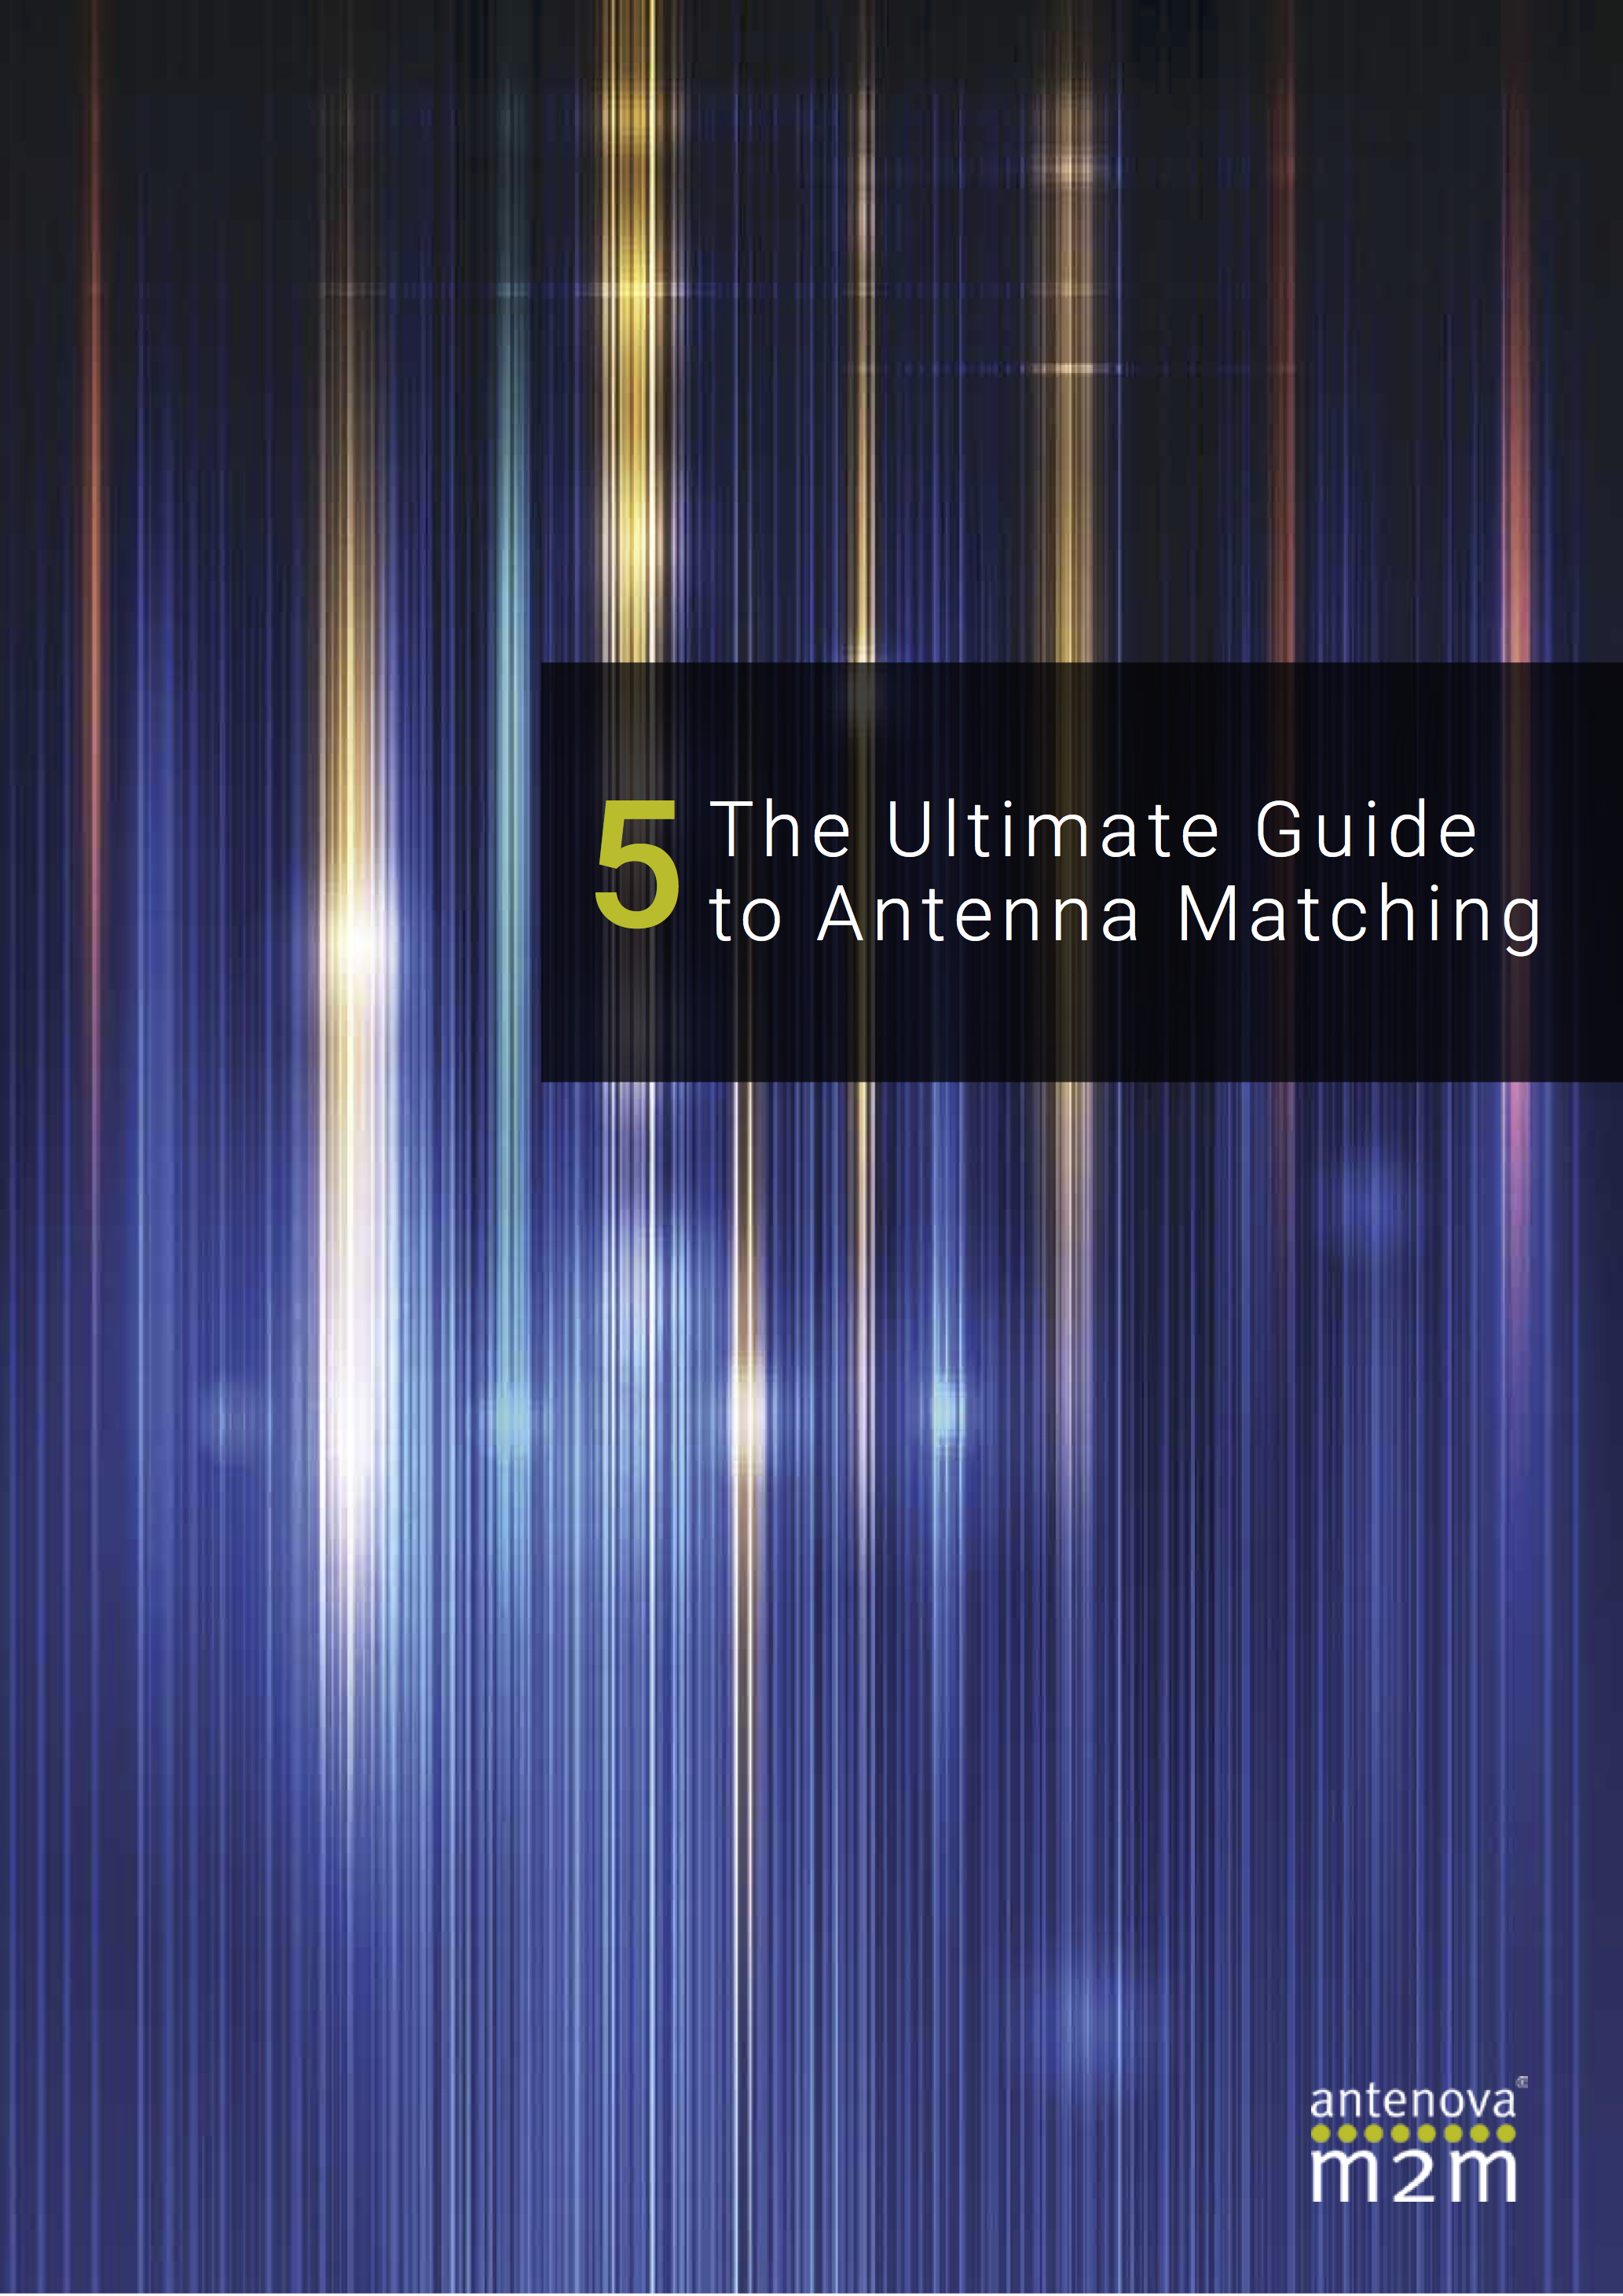 The Ultimate Guide to Antenna Matching